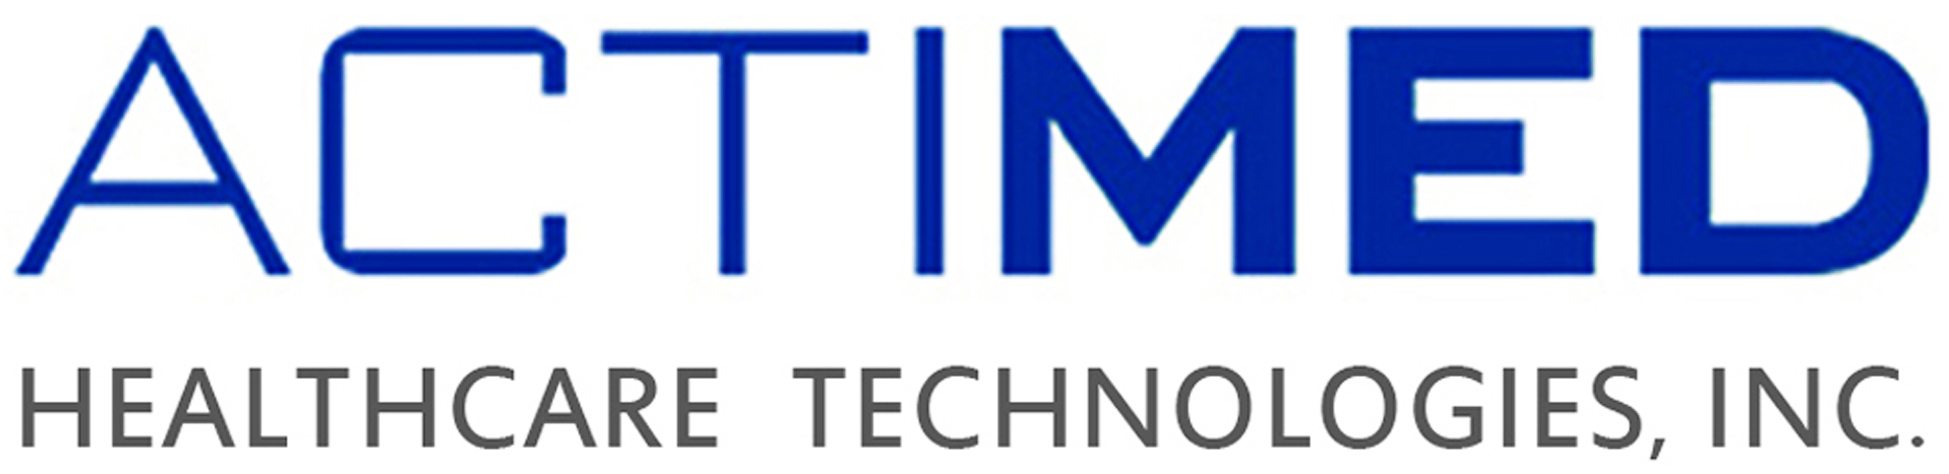 Actimed Healthcare Technologies, Inc.